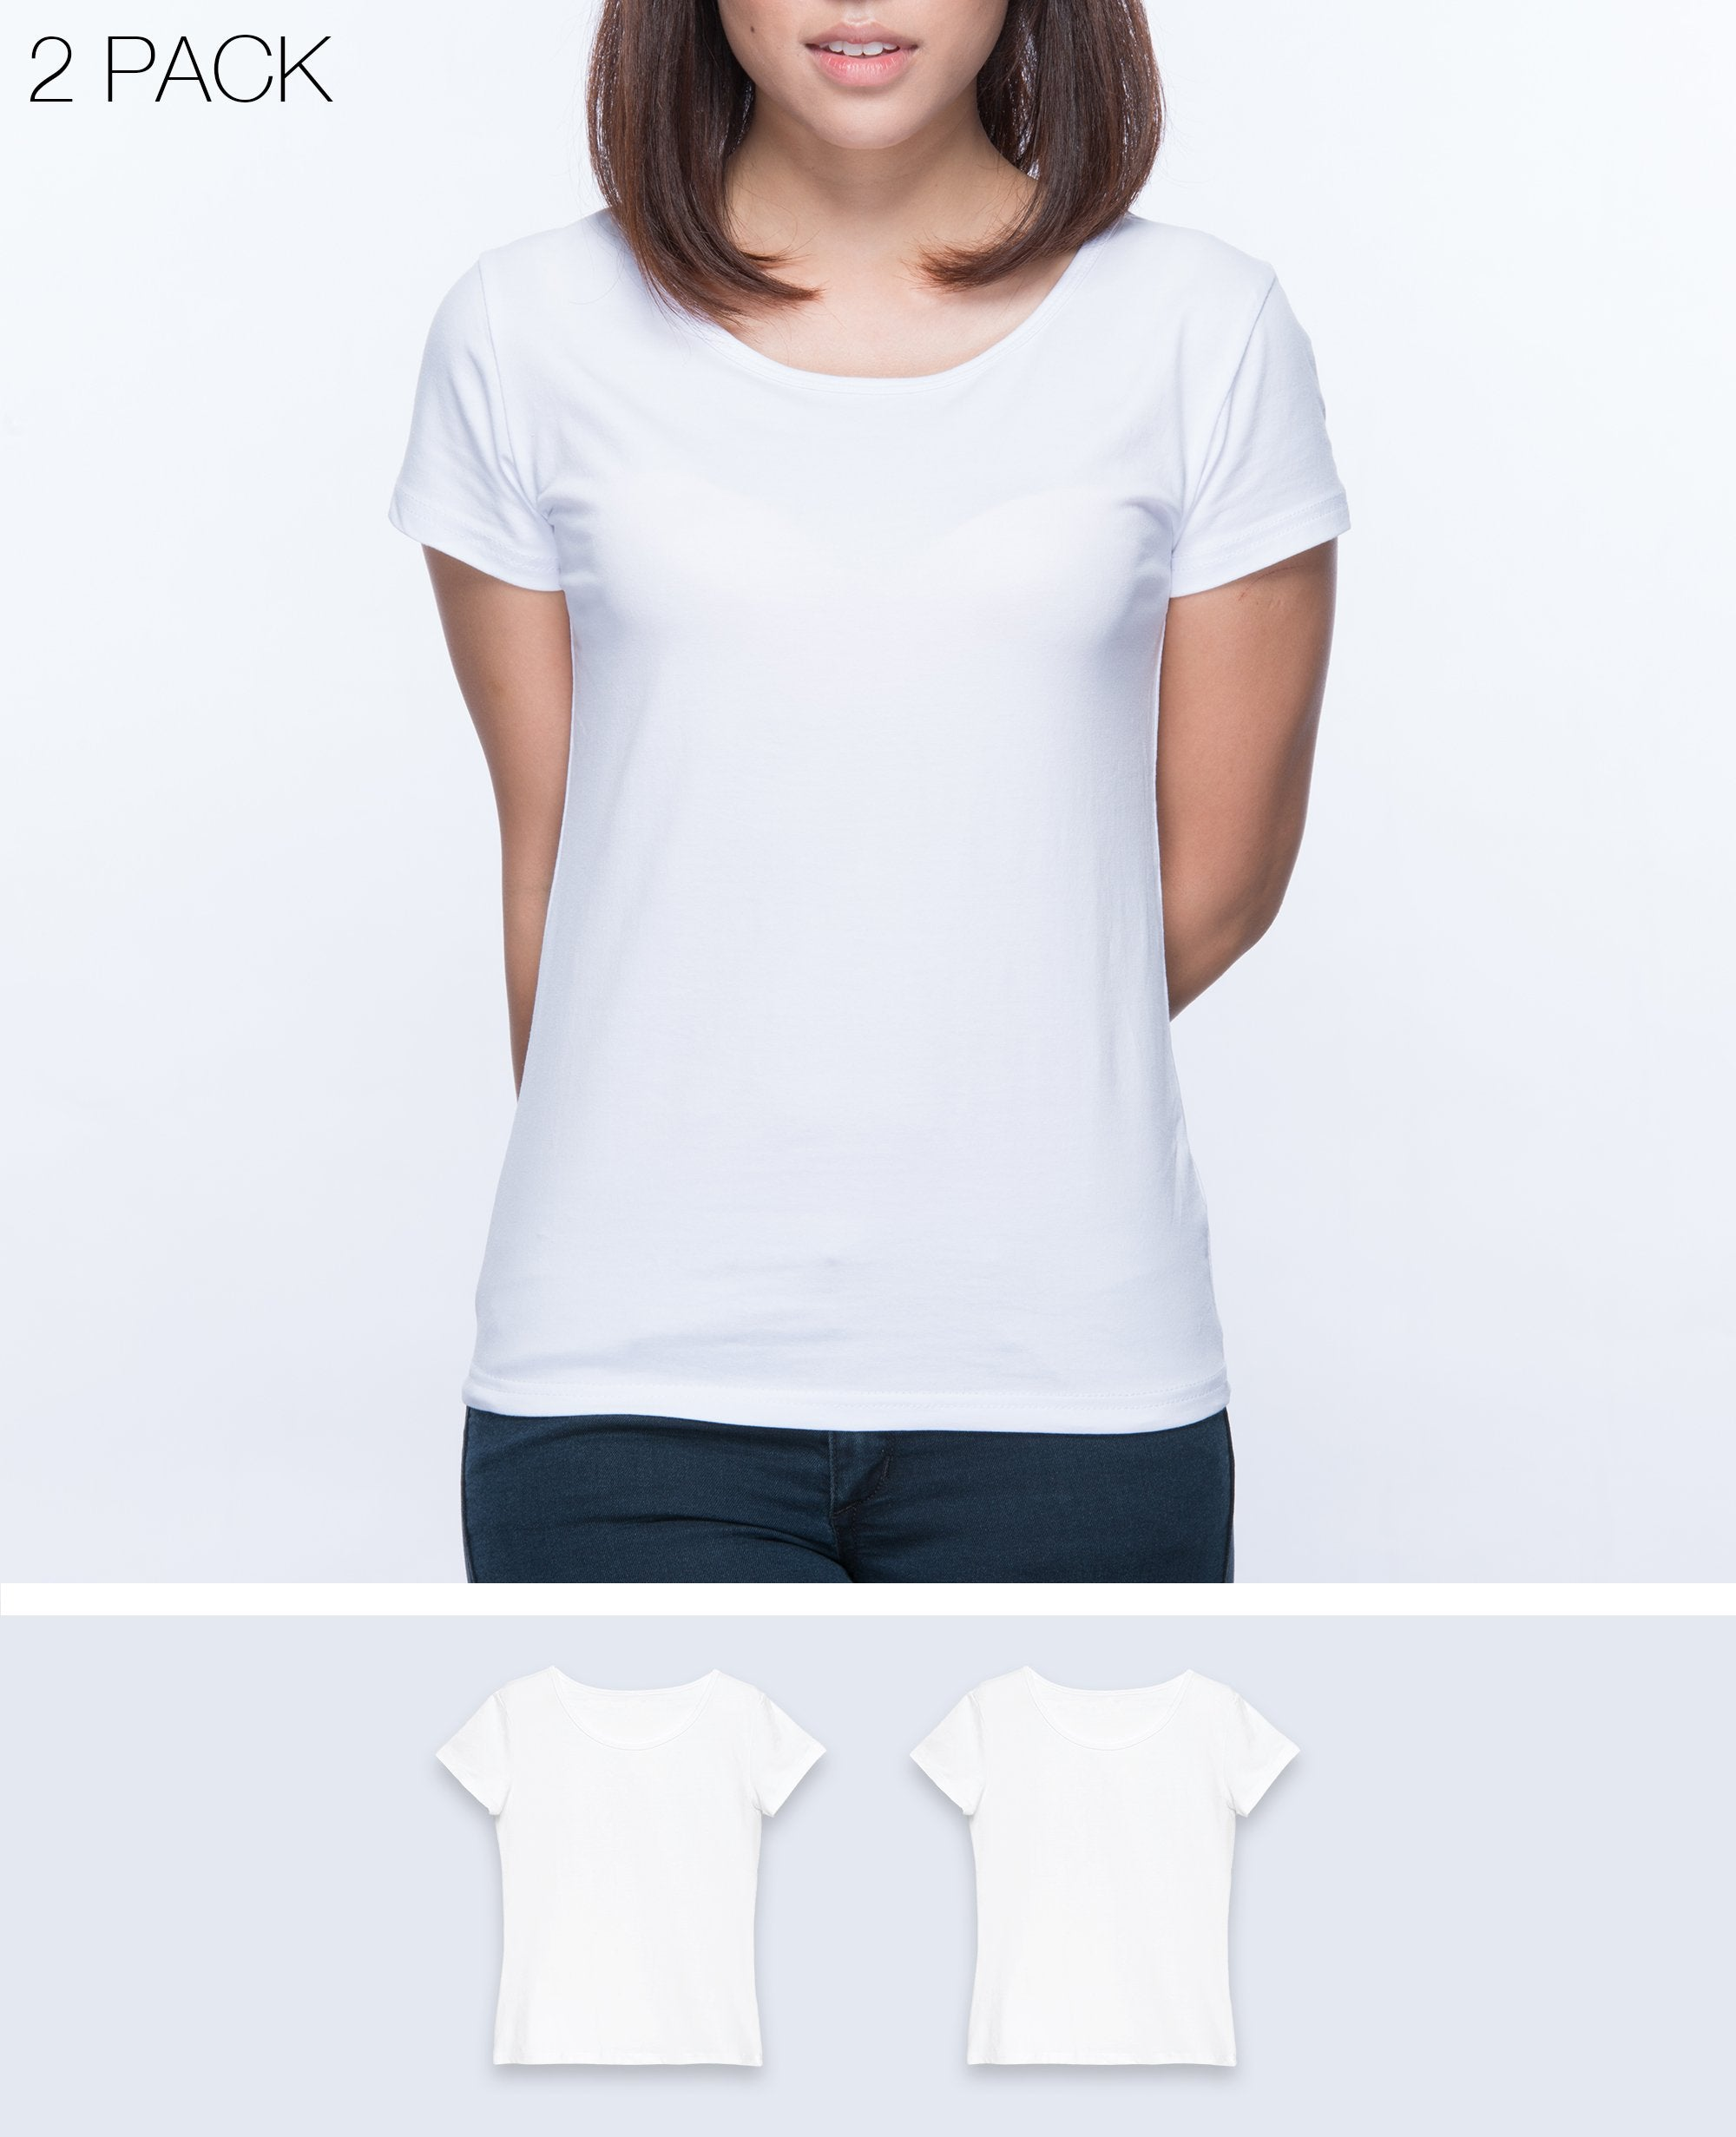 Slim fit T-shirt Women in White 2 pack - T-Shirts - BRANMA - BRANMA